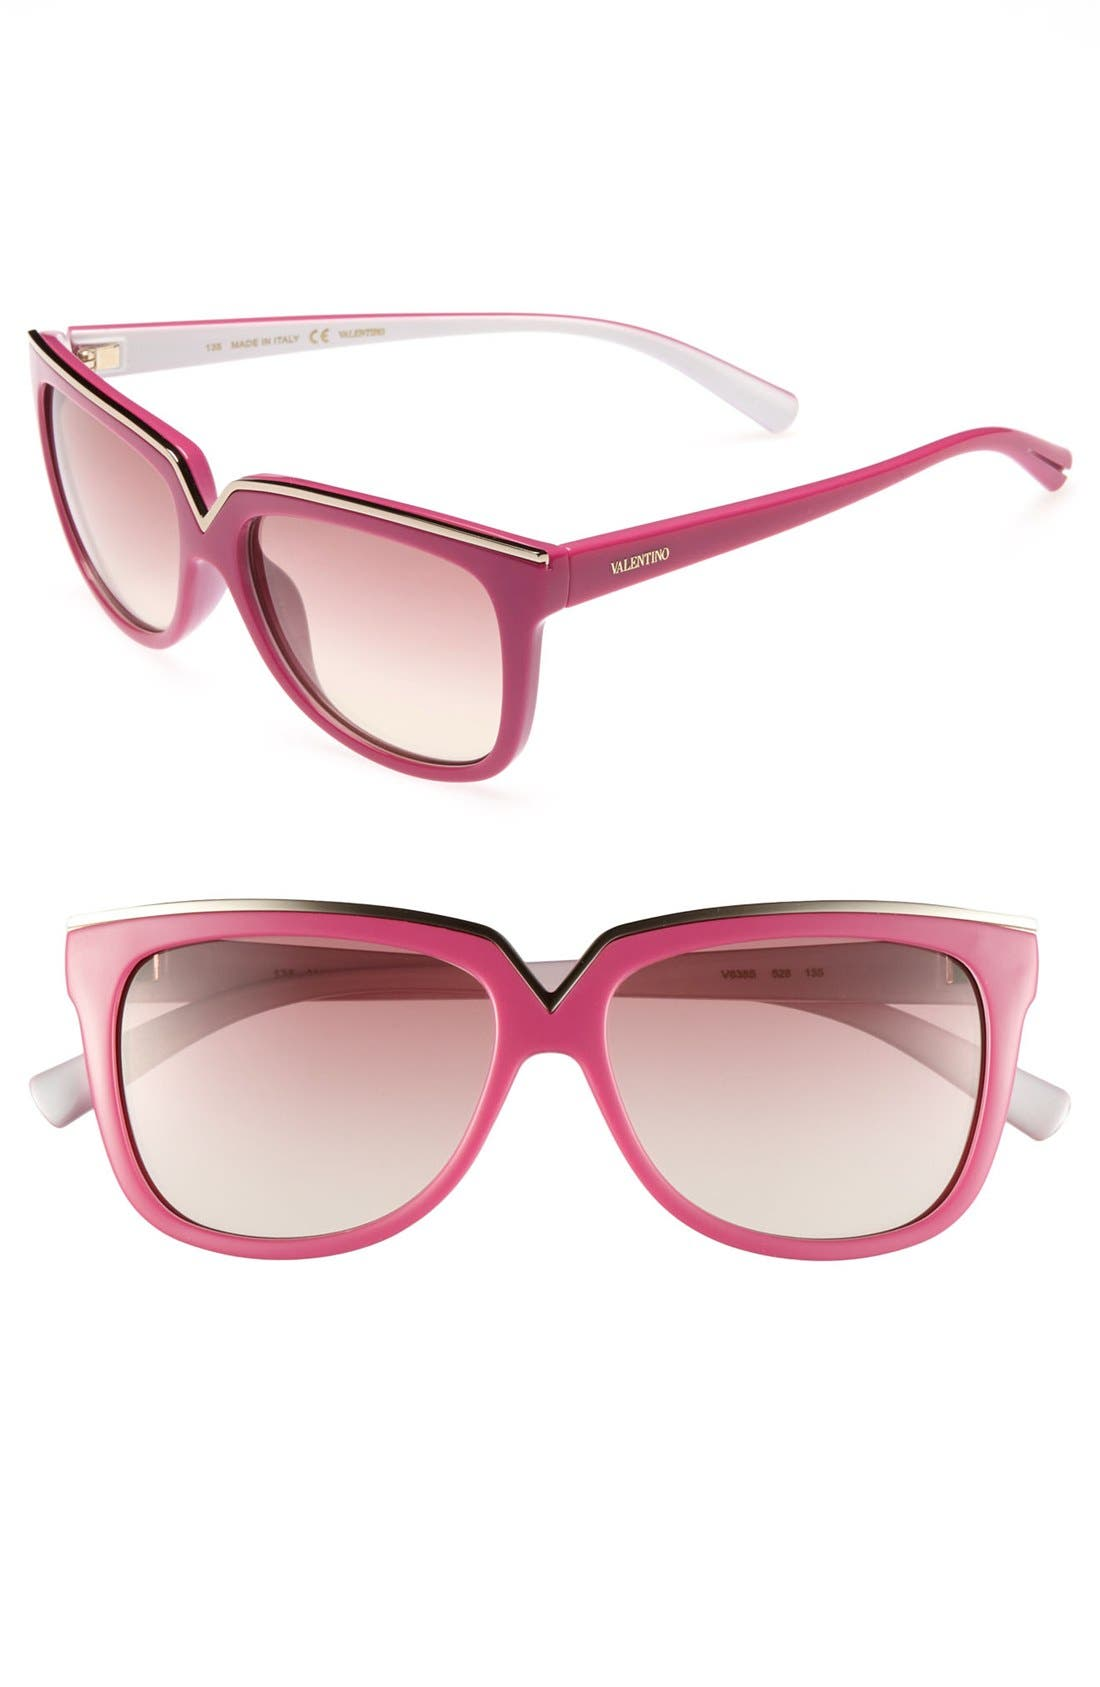 Alternate Image 1 Selected - Valentino 53mm Sunglasses